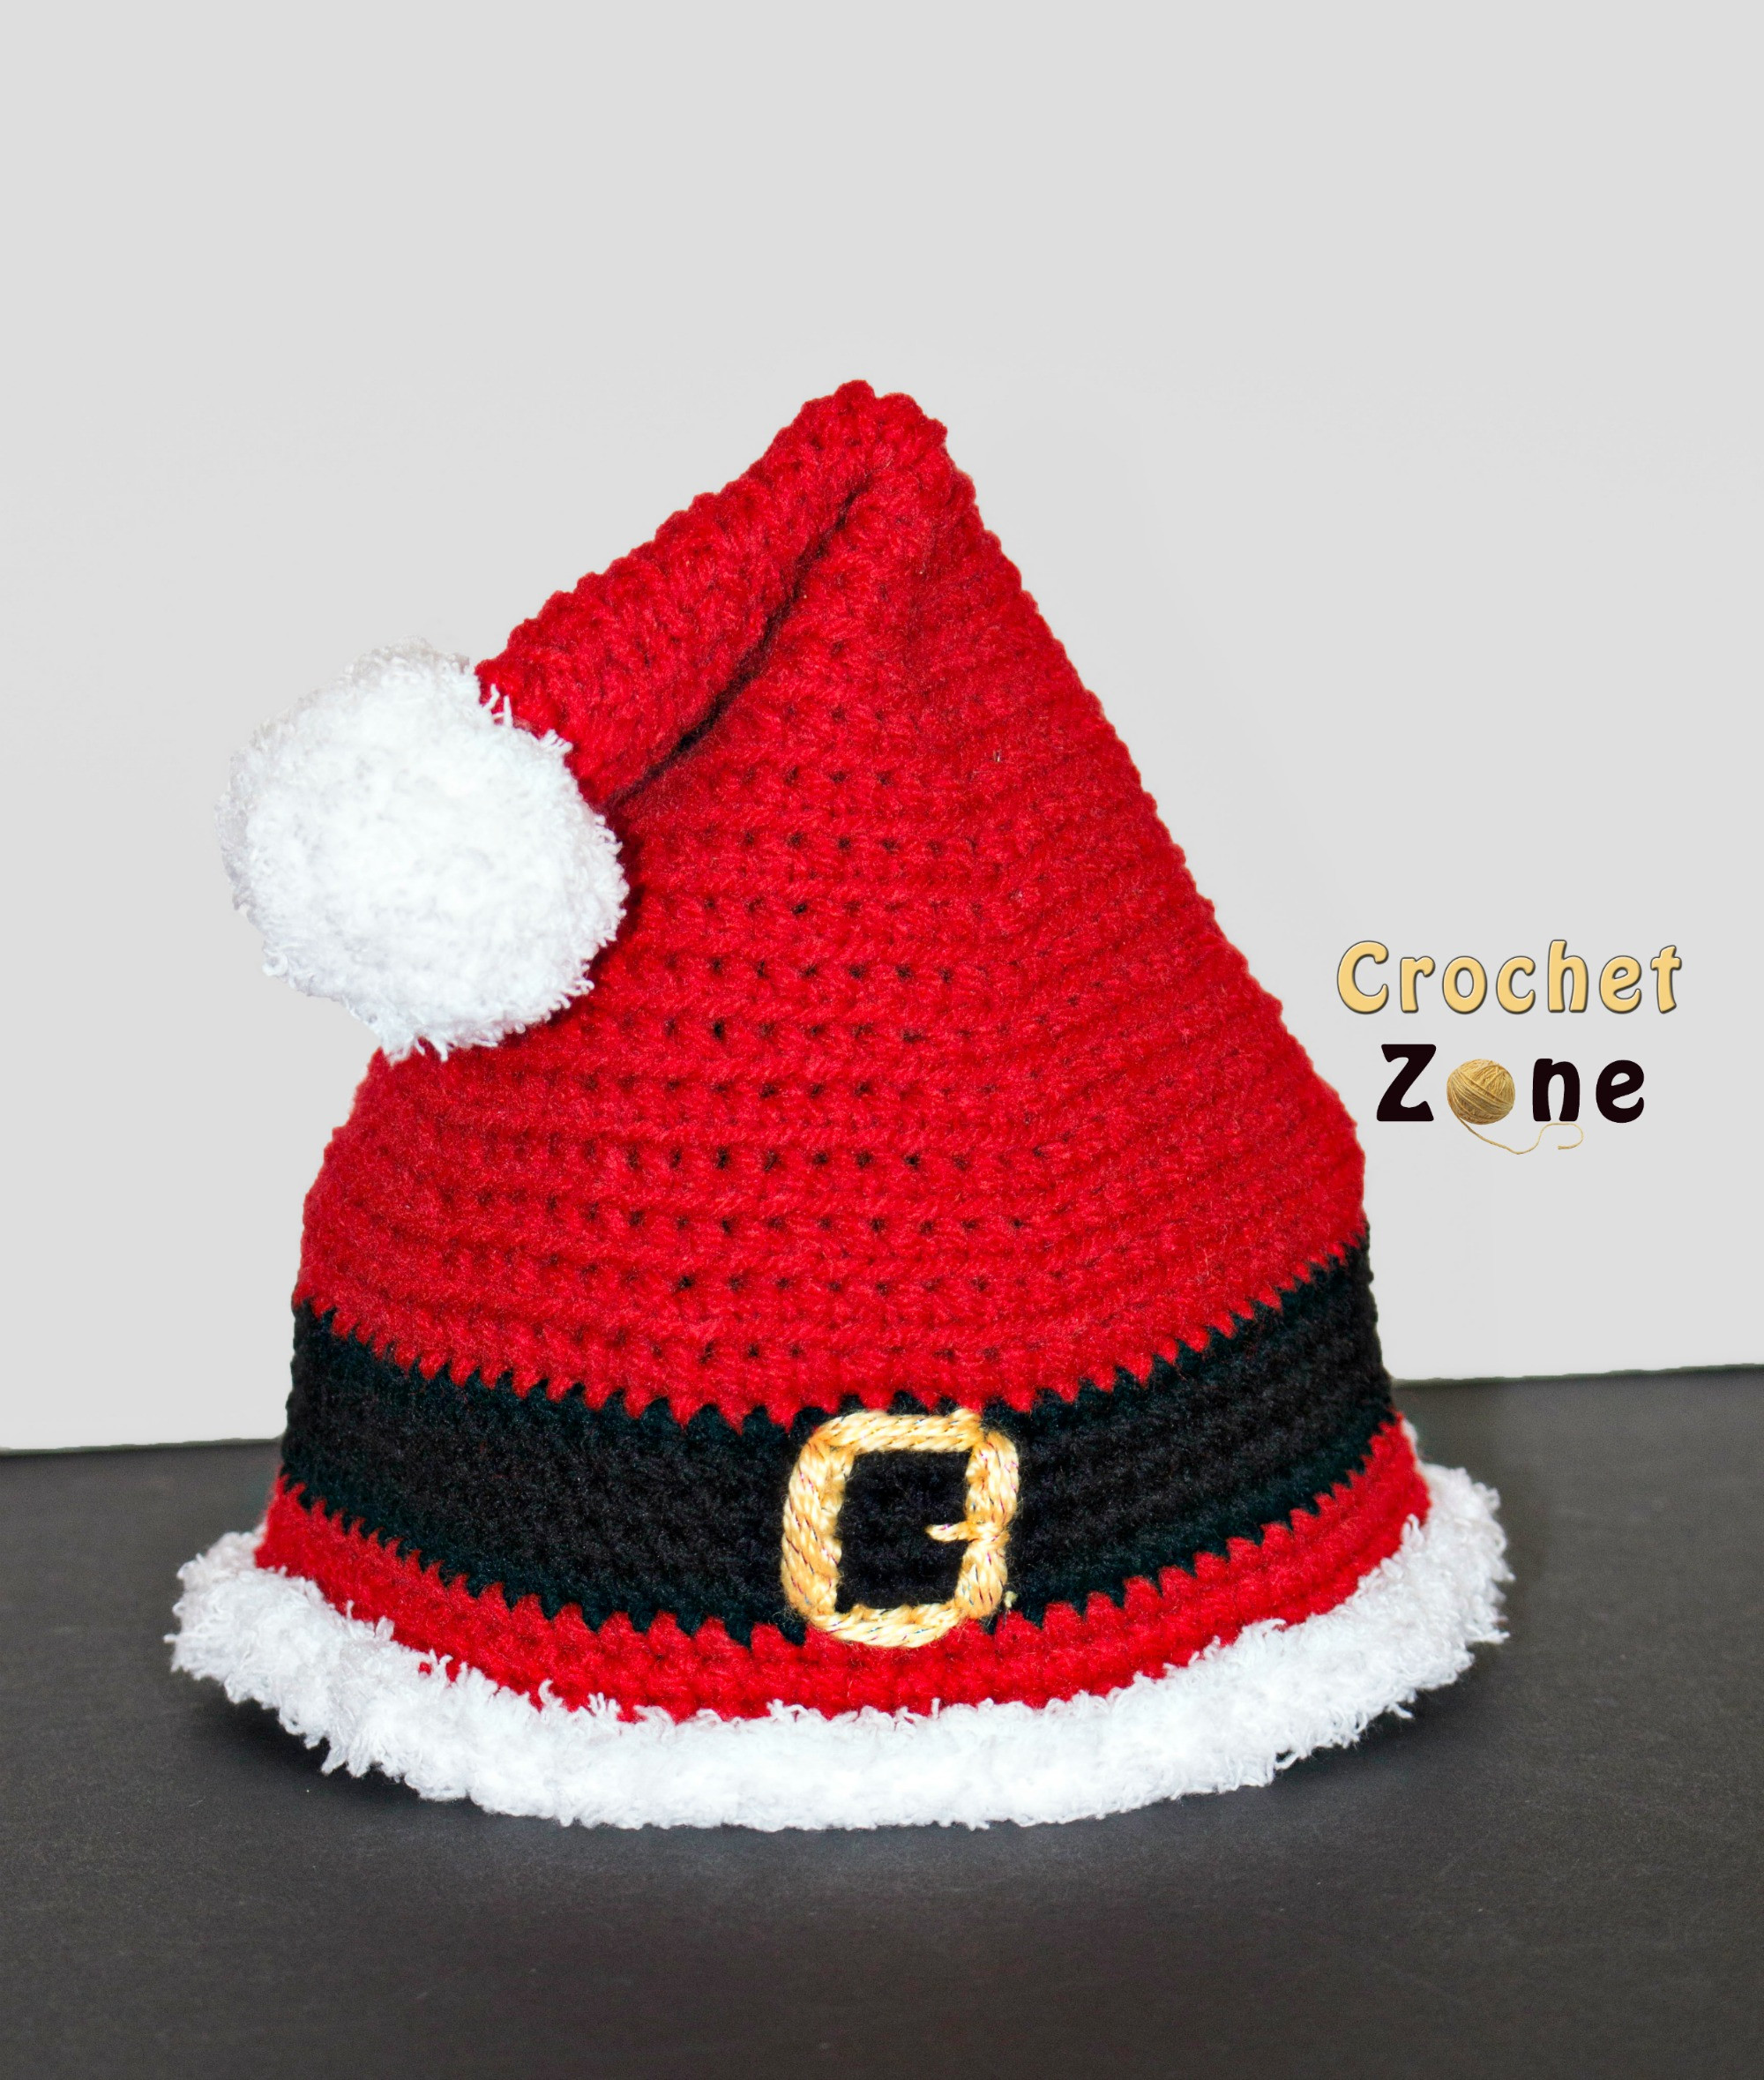 Fresh Crochet Zone All Things Crochet Santa Hat Pattern Of Awesome This Chunky Knit Santa Hat Will Be the Coziest Thing You Santa Hat Pattern